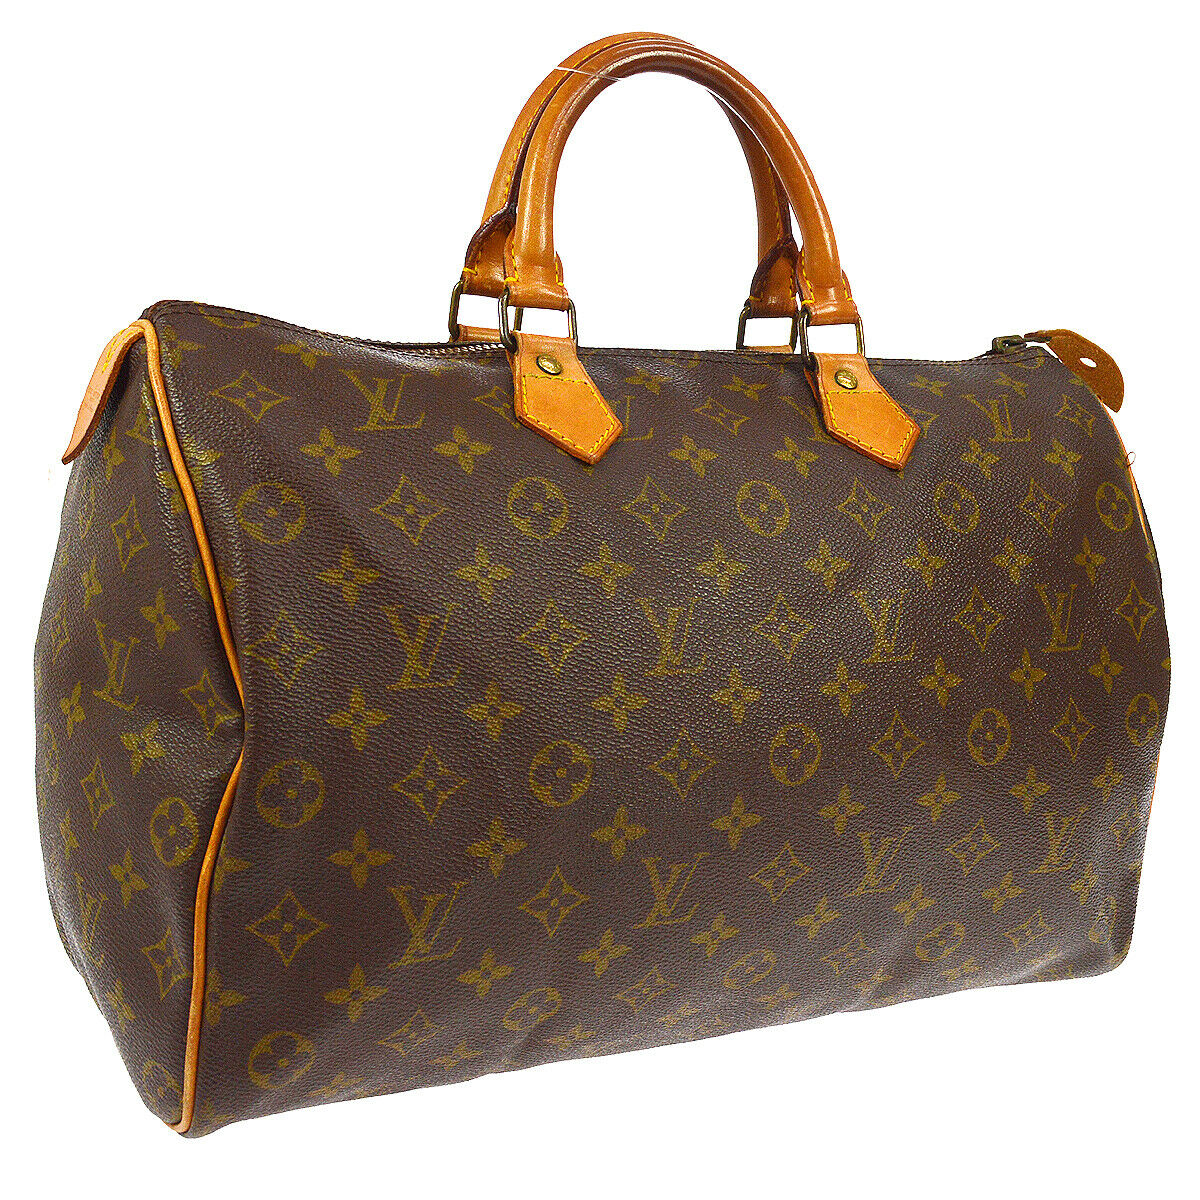 Louis Vuitton Sdy 35 Hand Bag 831sa Purse Monogram M41524 Authentic A45646